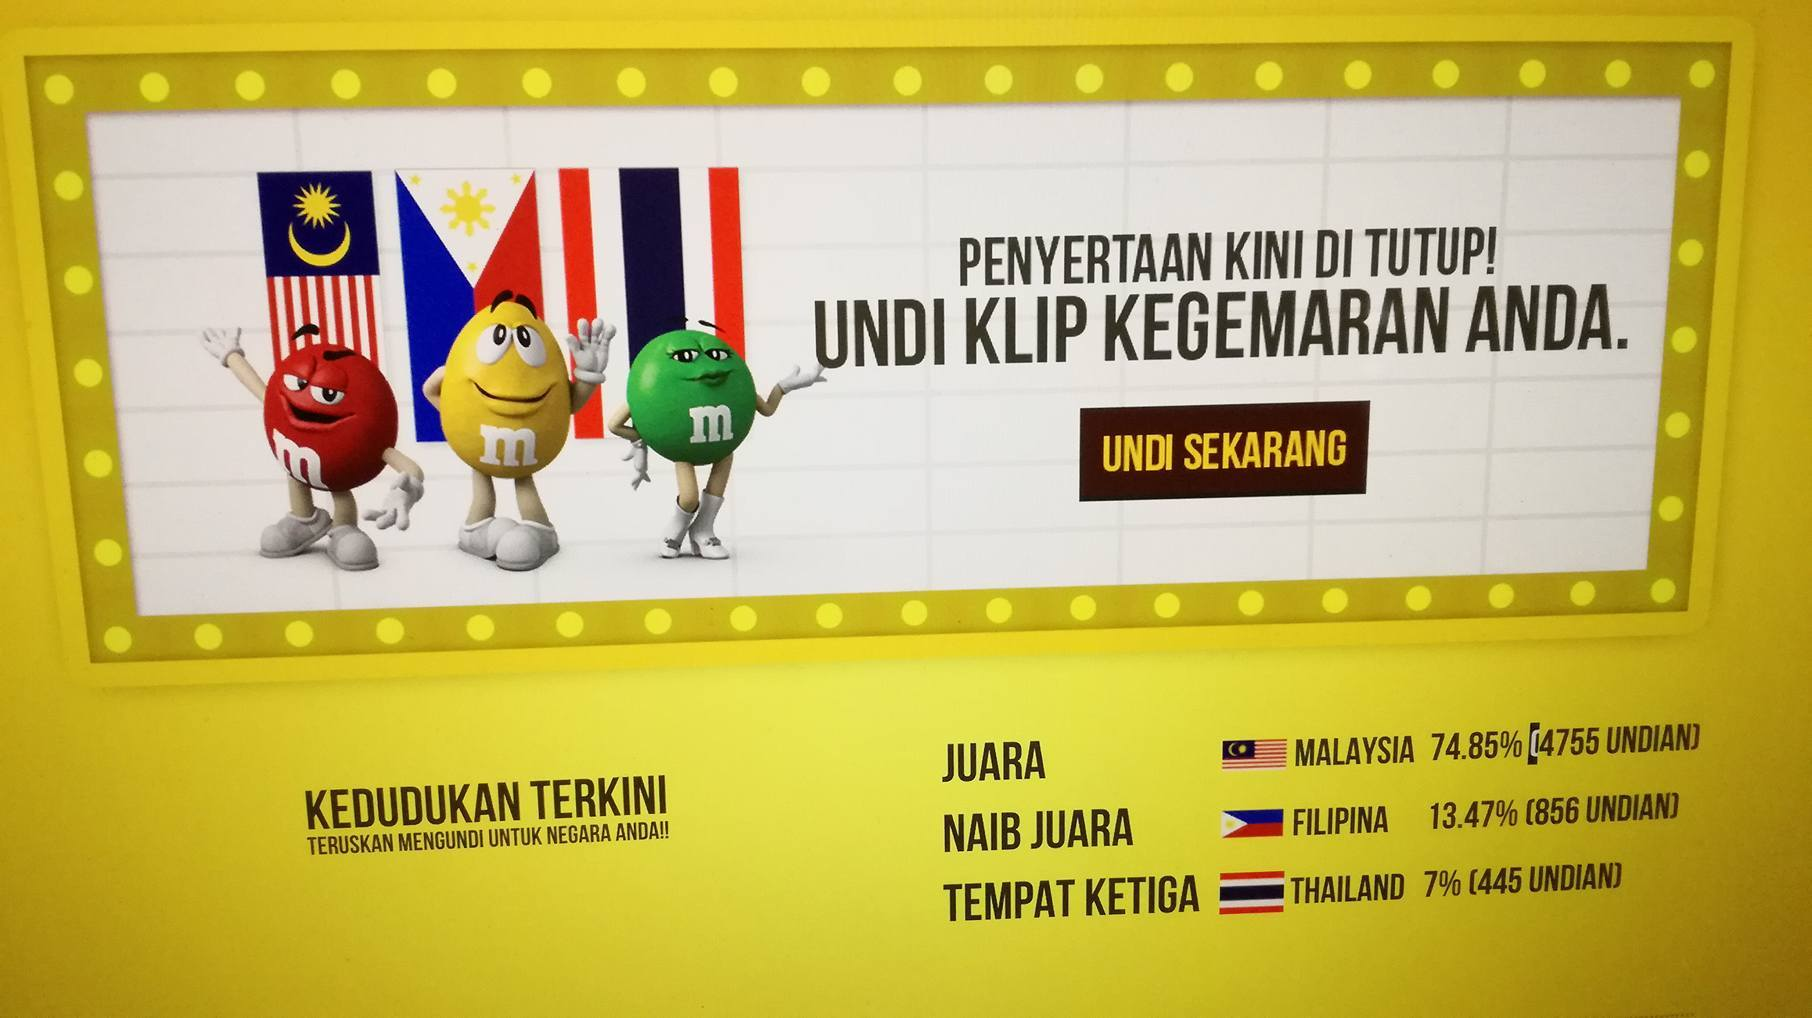 Malaysian Wins Regional M&M's Screenbite Awards 2017